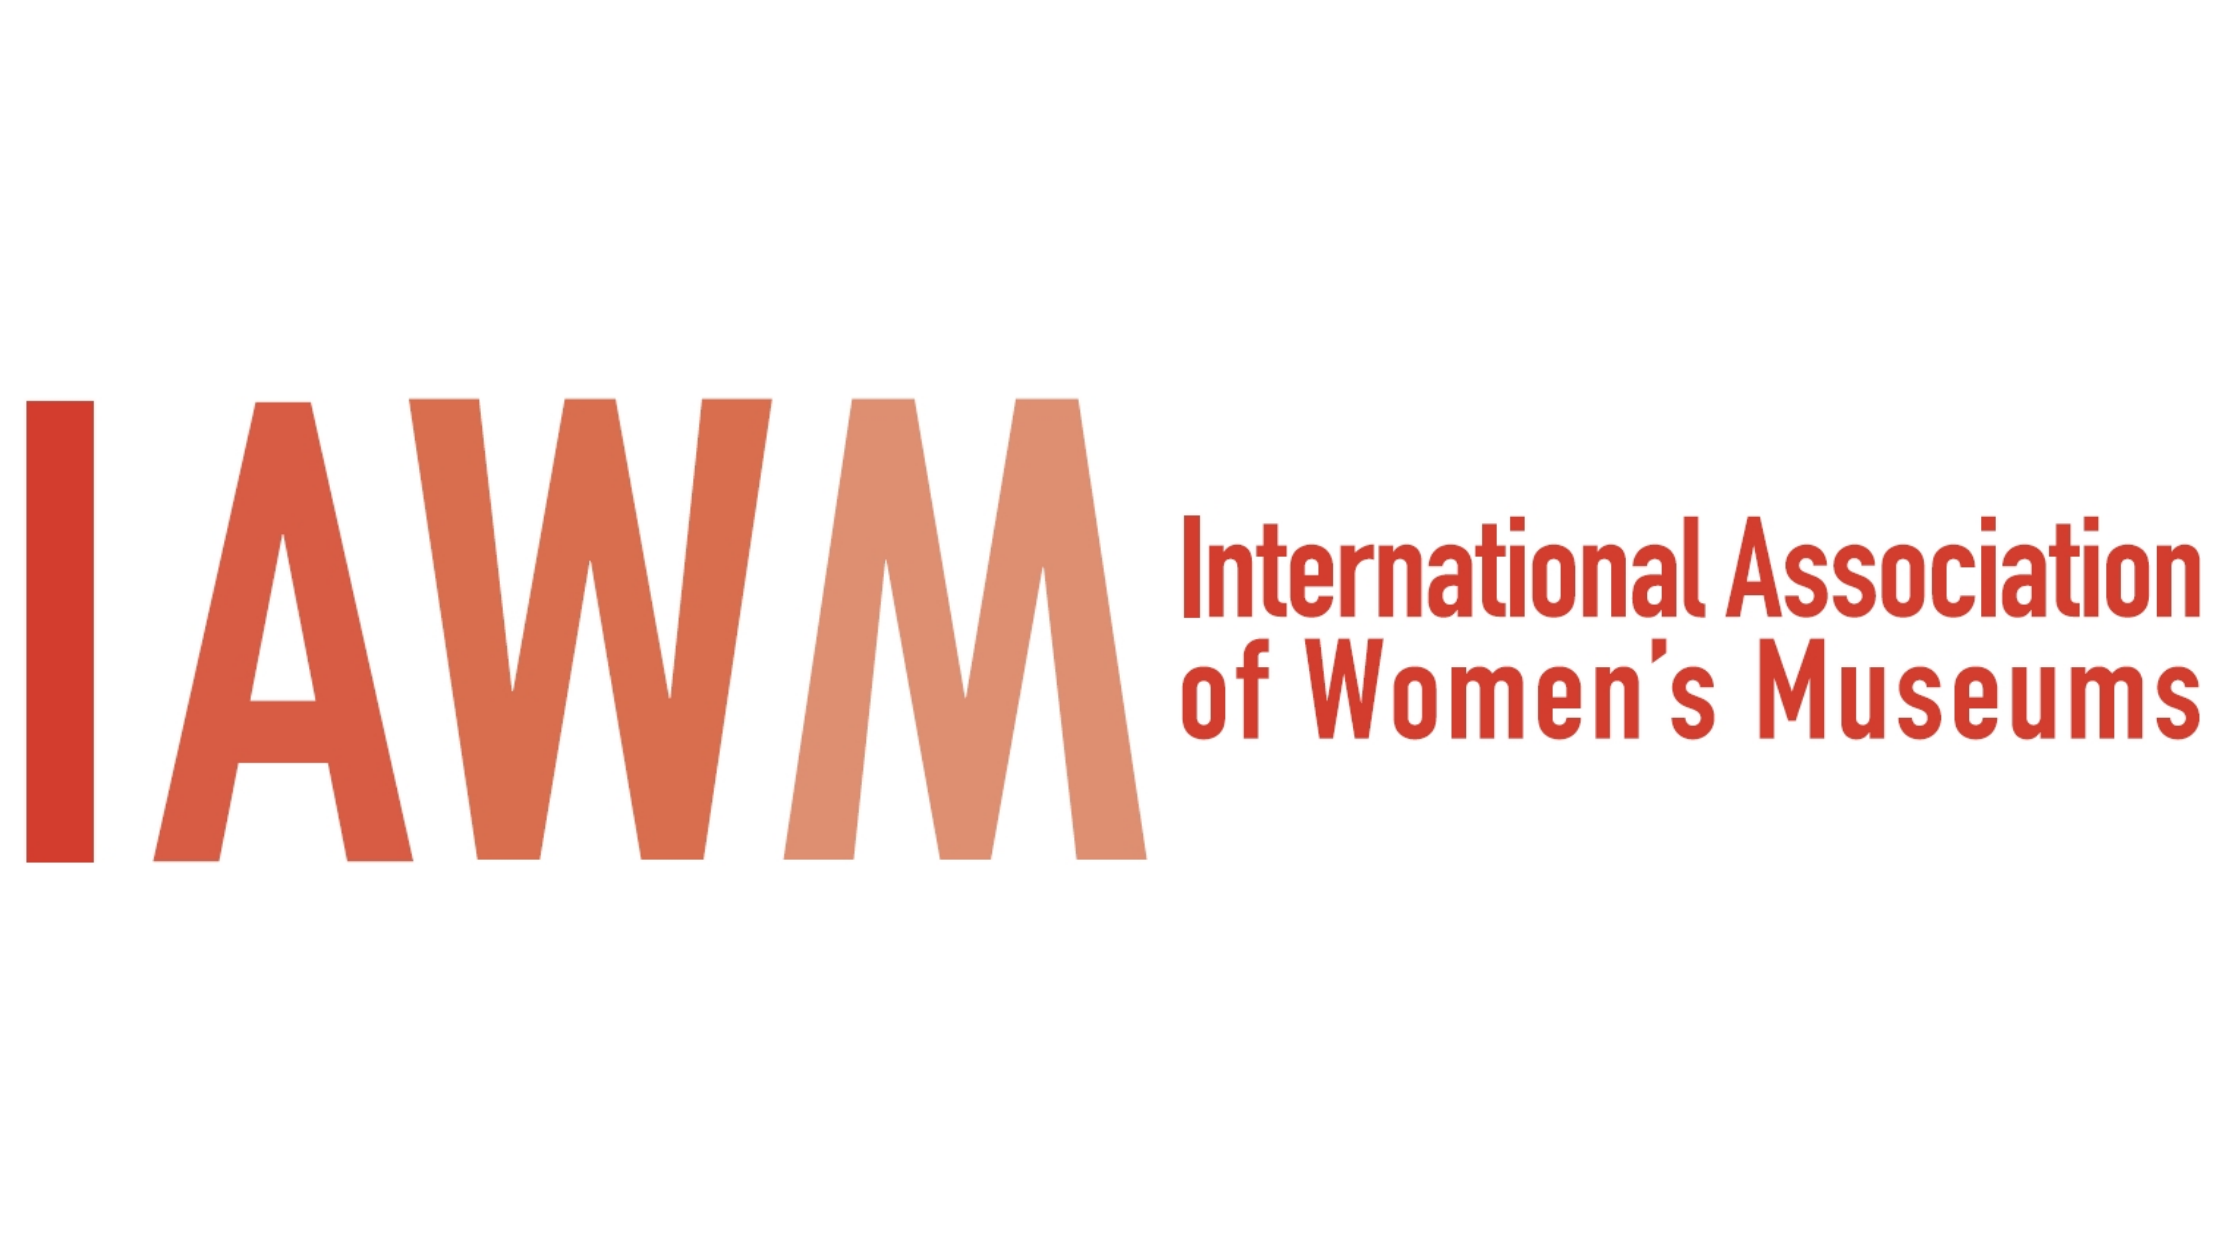 International Association of Women's Museums